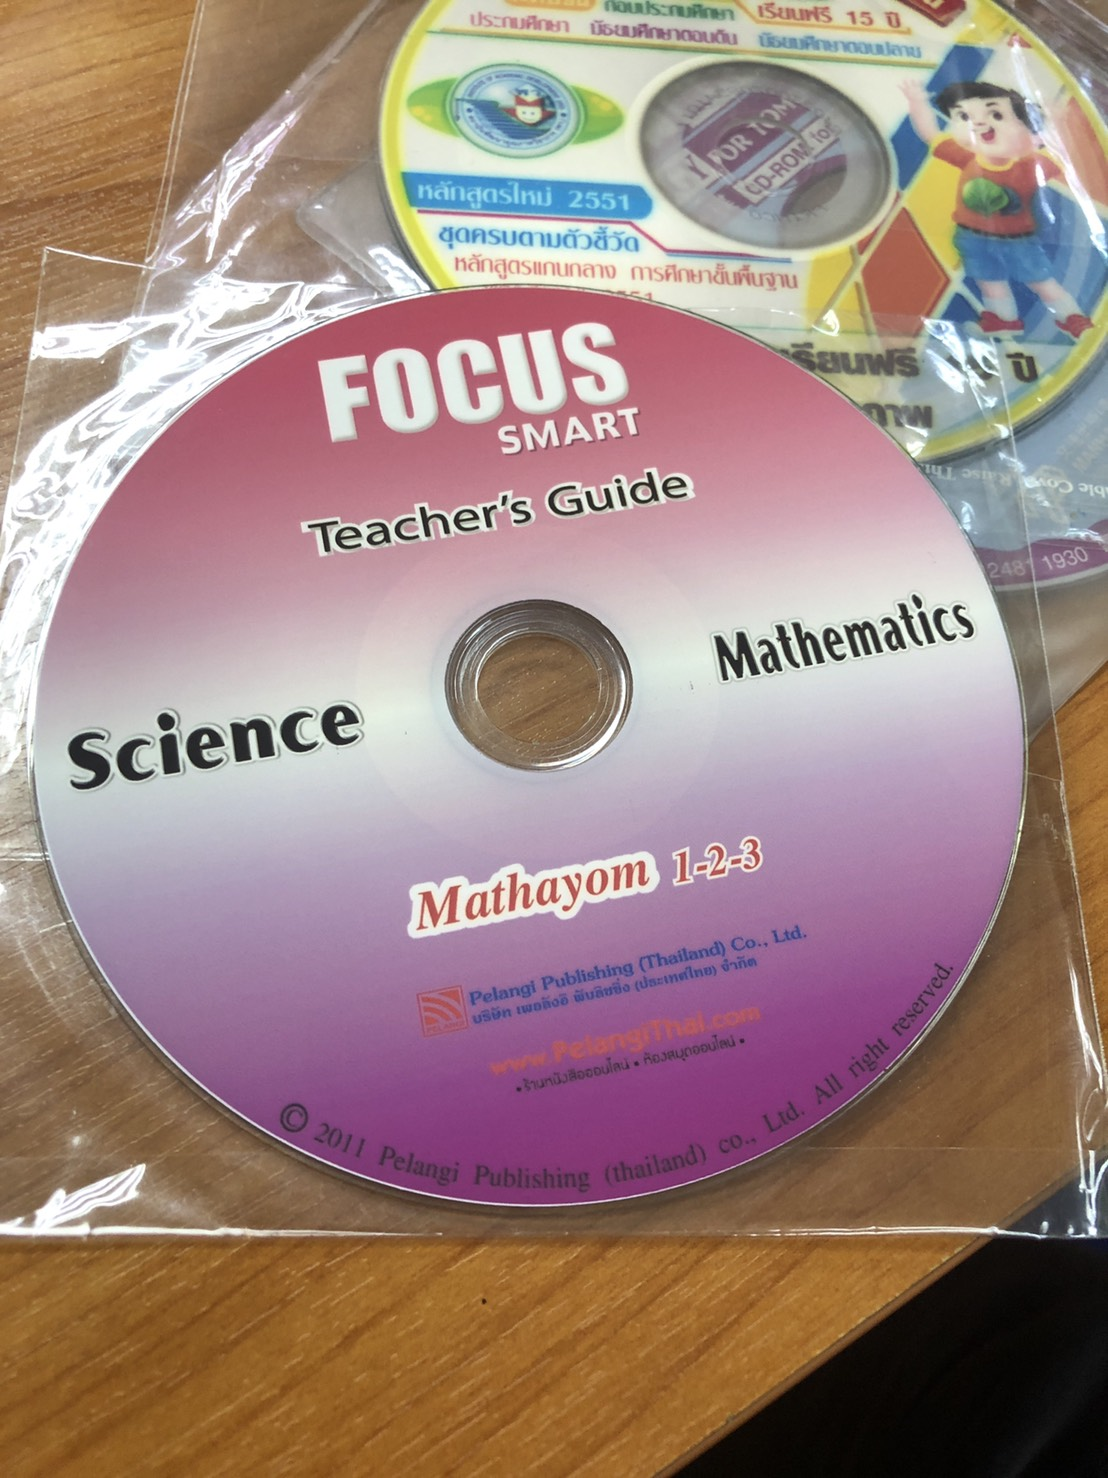 Focus Smart Teacher's Guide for Mathematics M.3